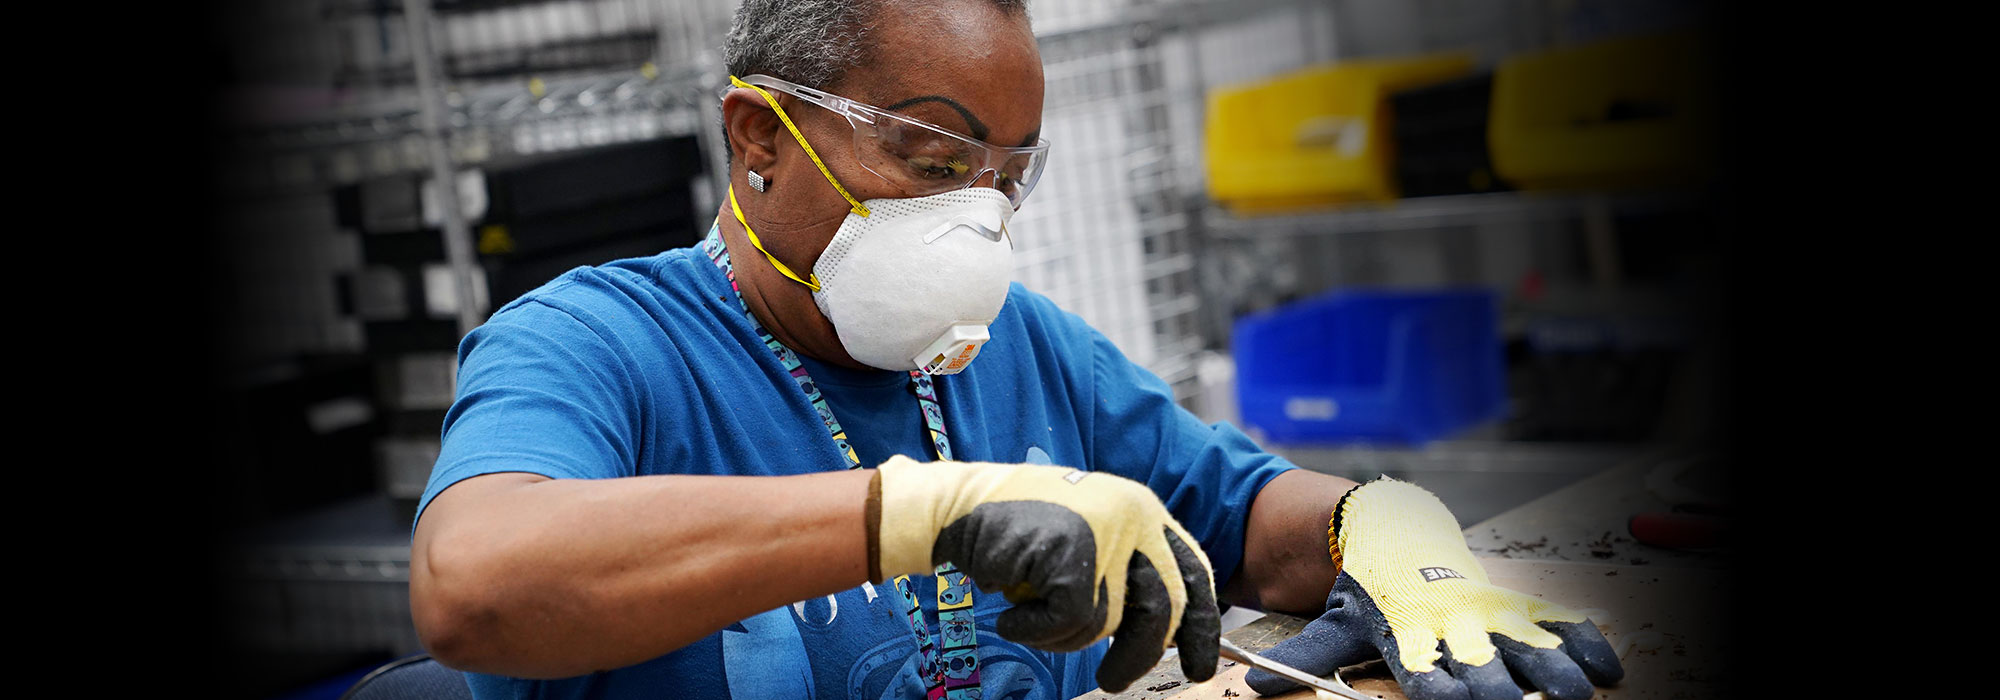 African American woman wearing work gloves and an N95 mask